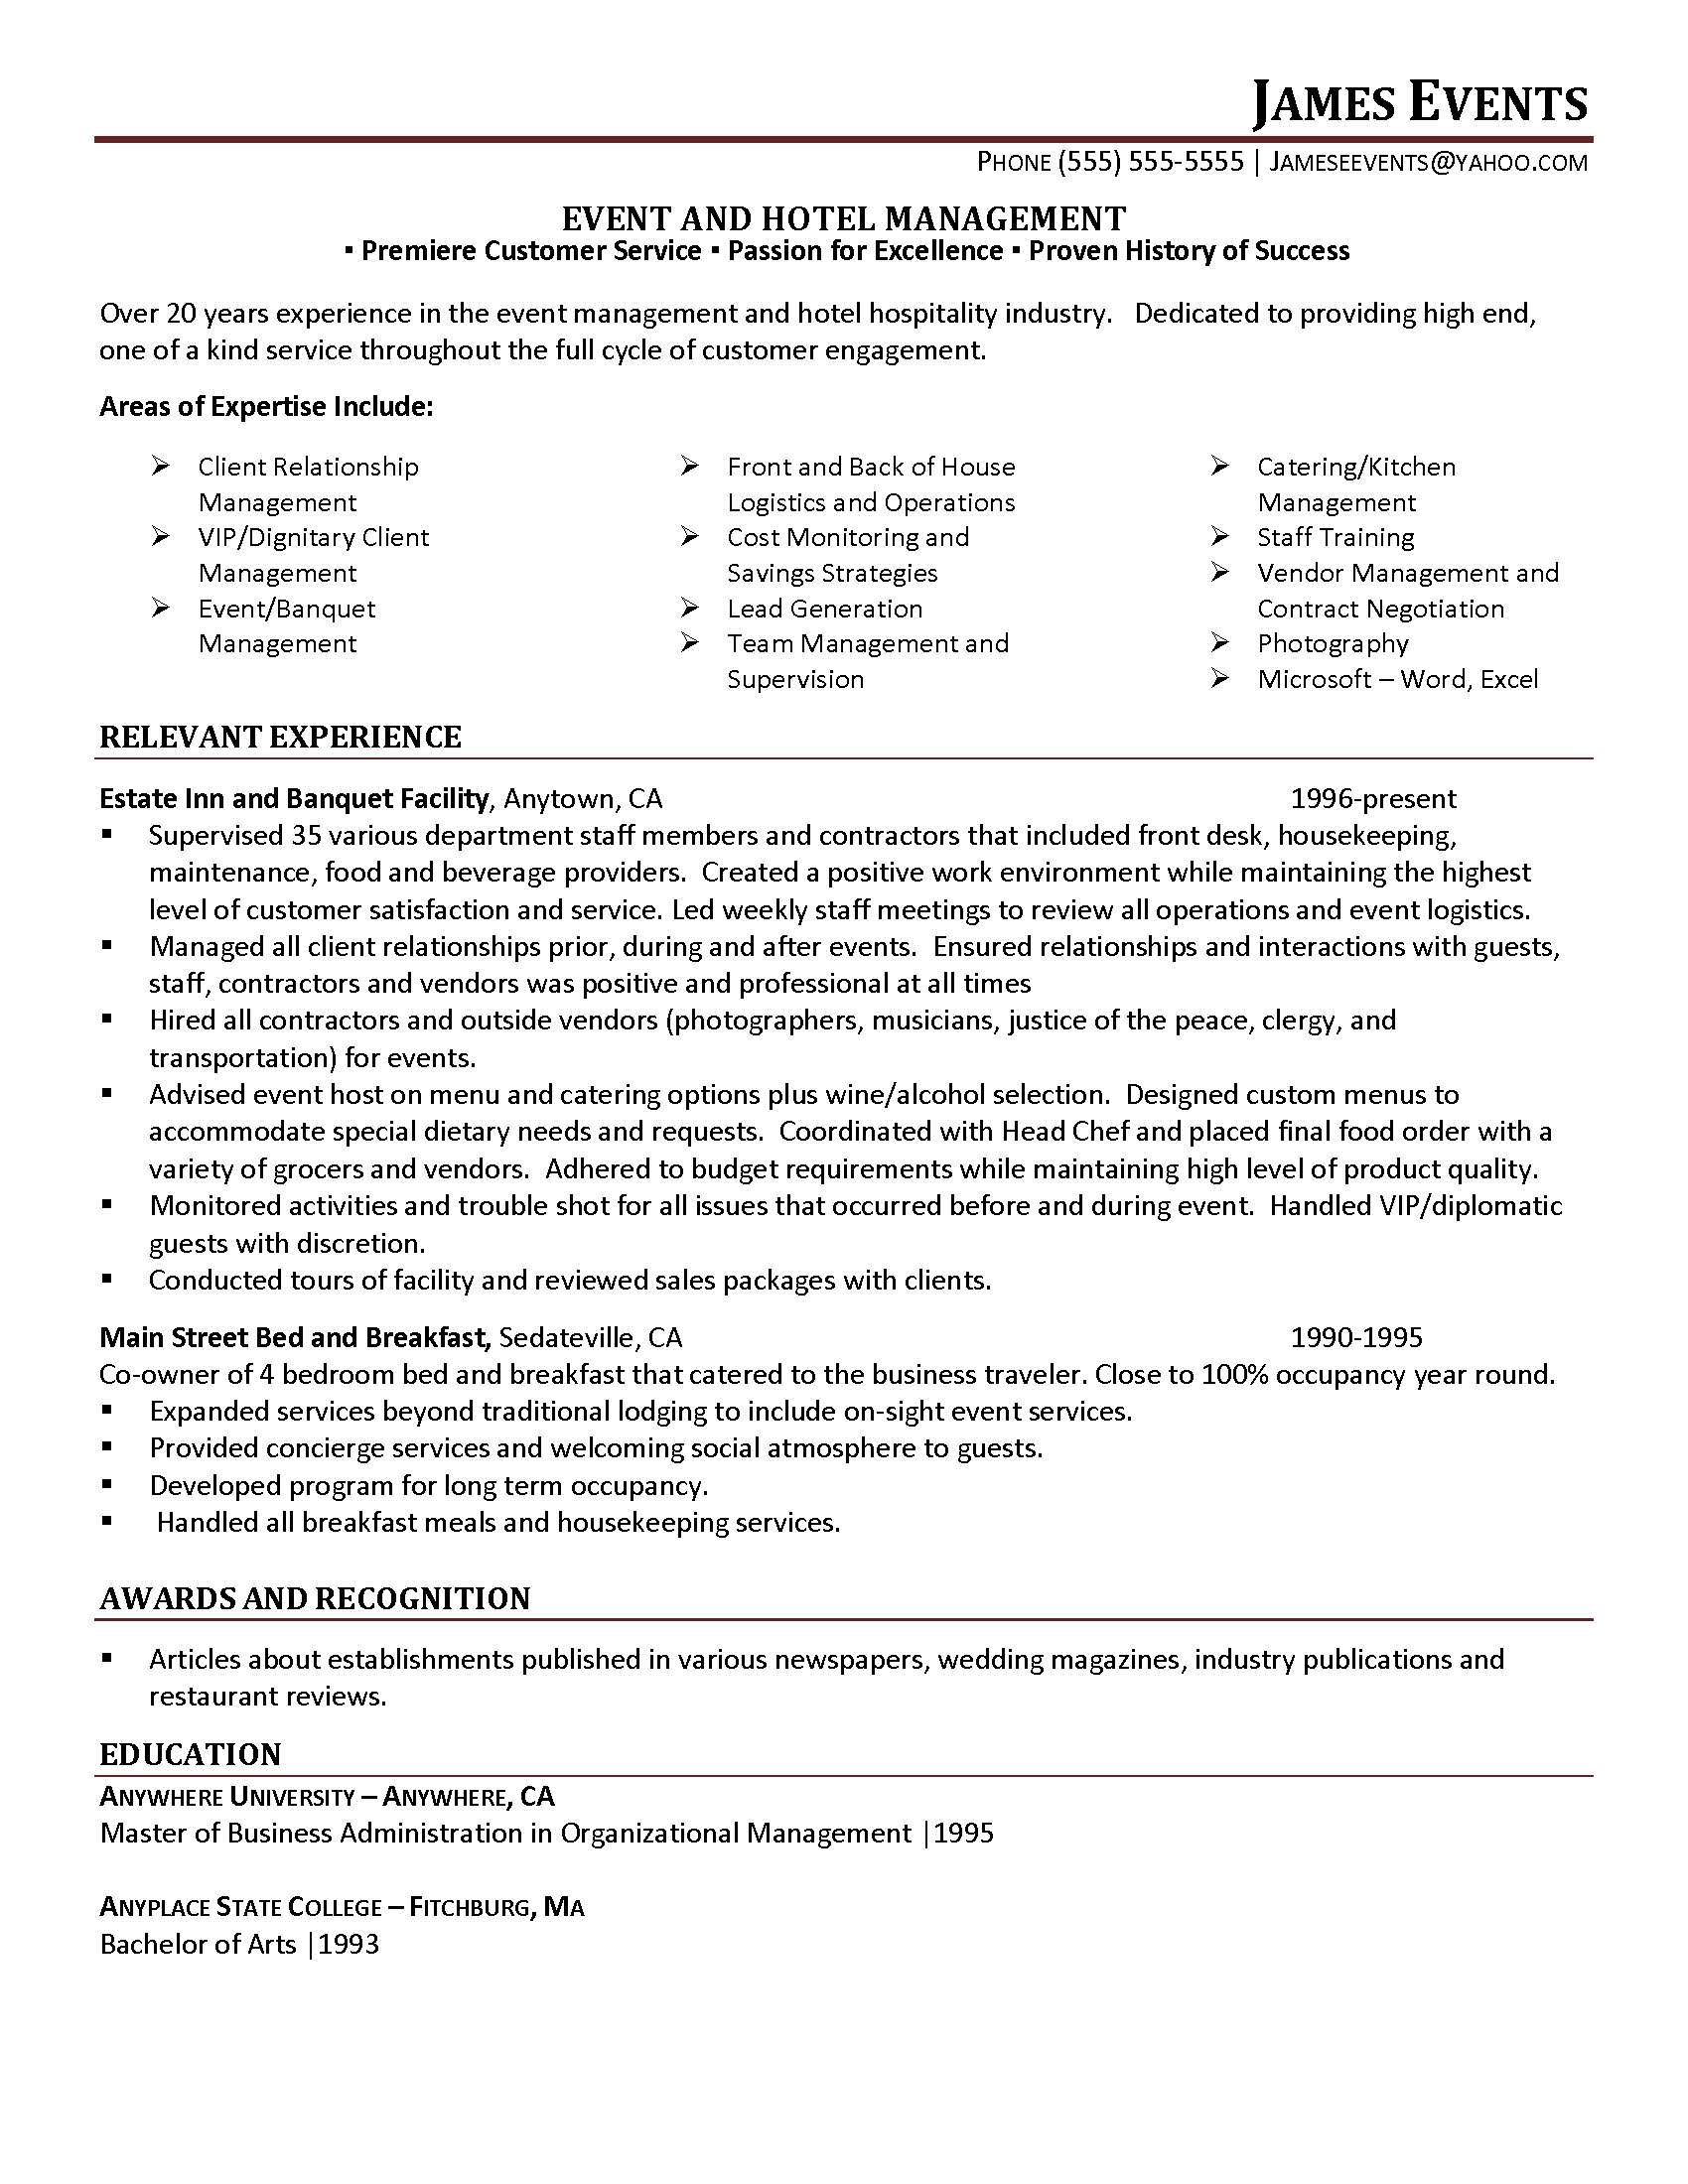 Duty Manager Cover Letter Sample   LiveCareer COVER LETTER Mont Park Hotel